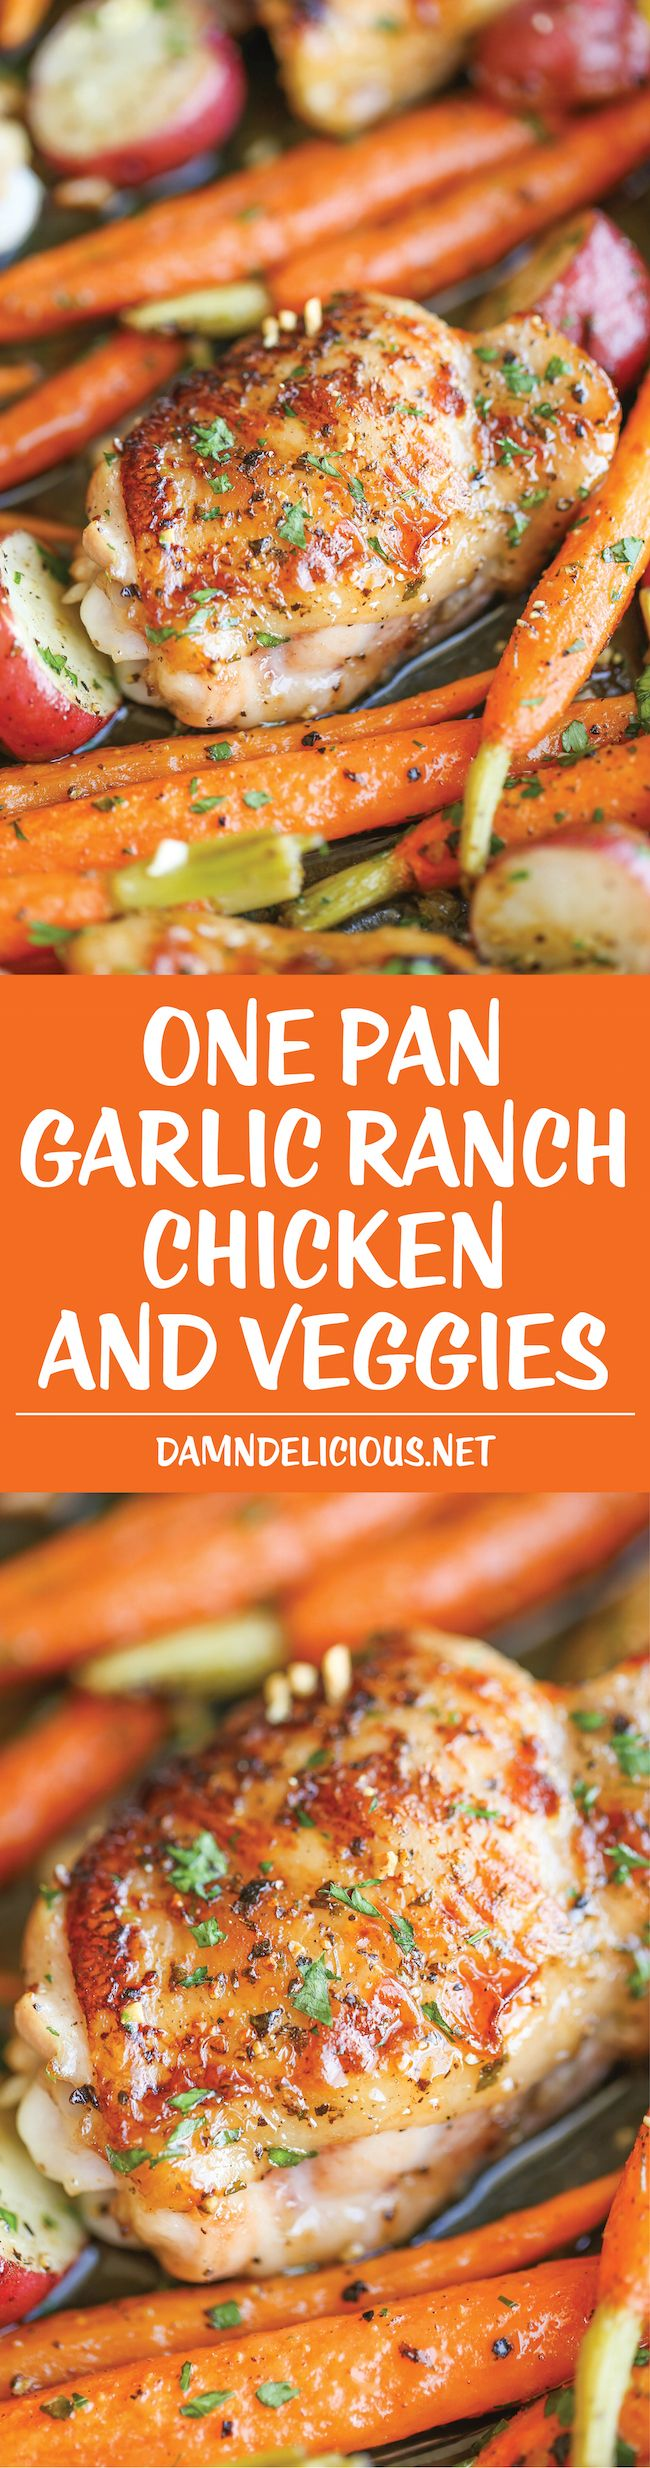 One Pan Garlic Ranch Chicken And Veggies Oven Roasted